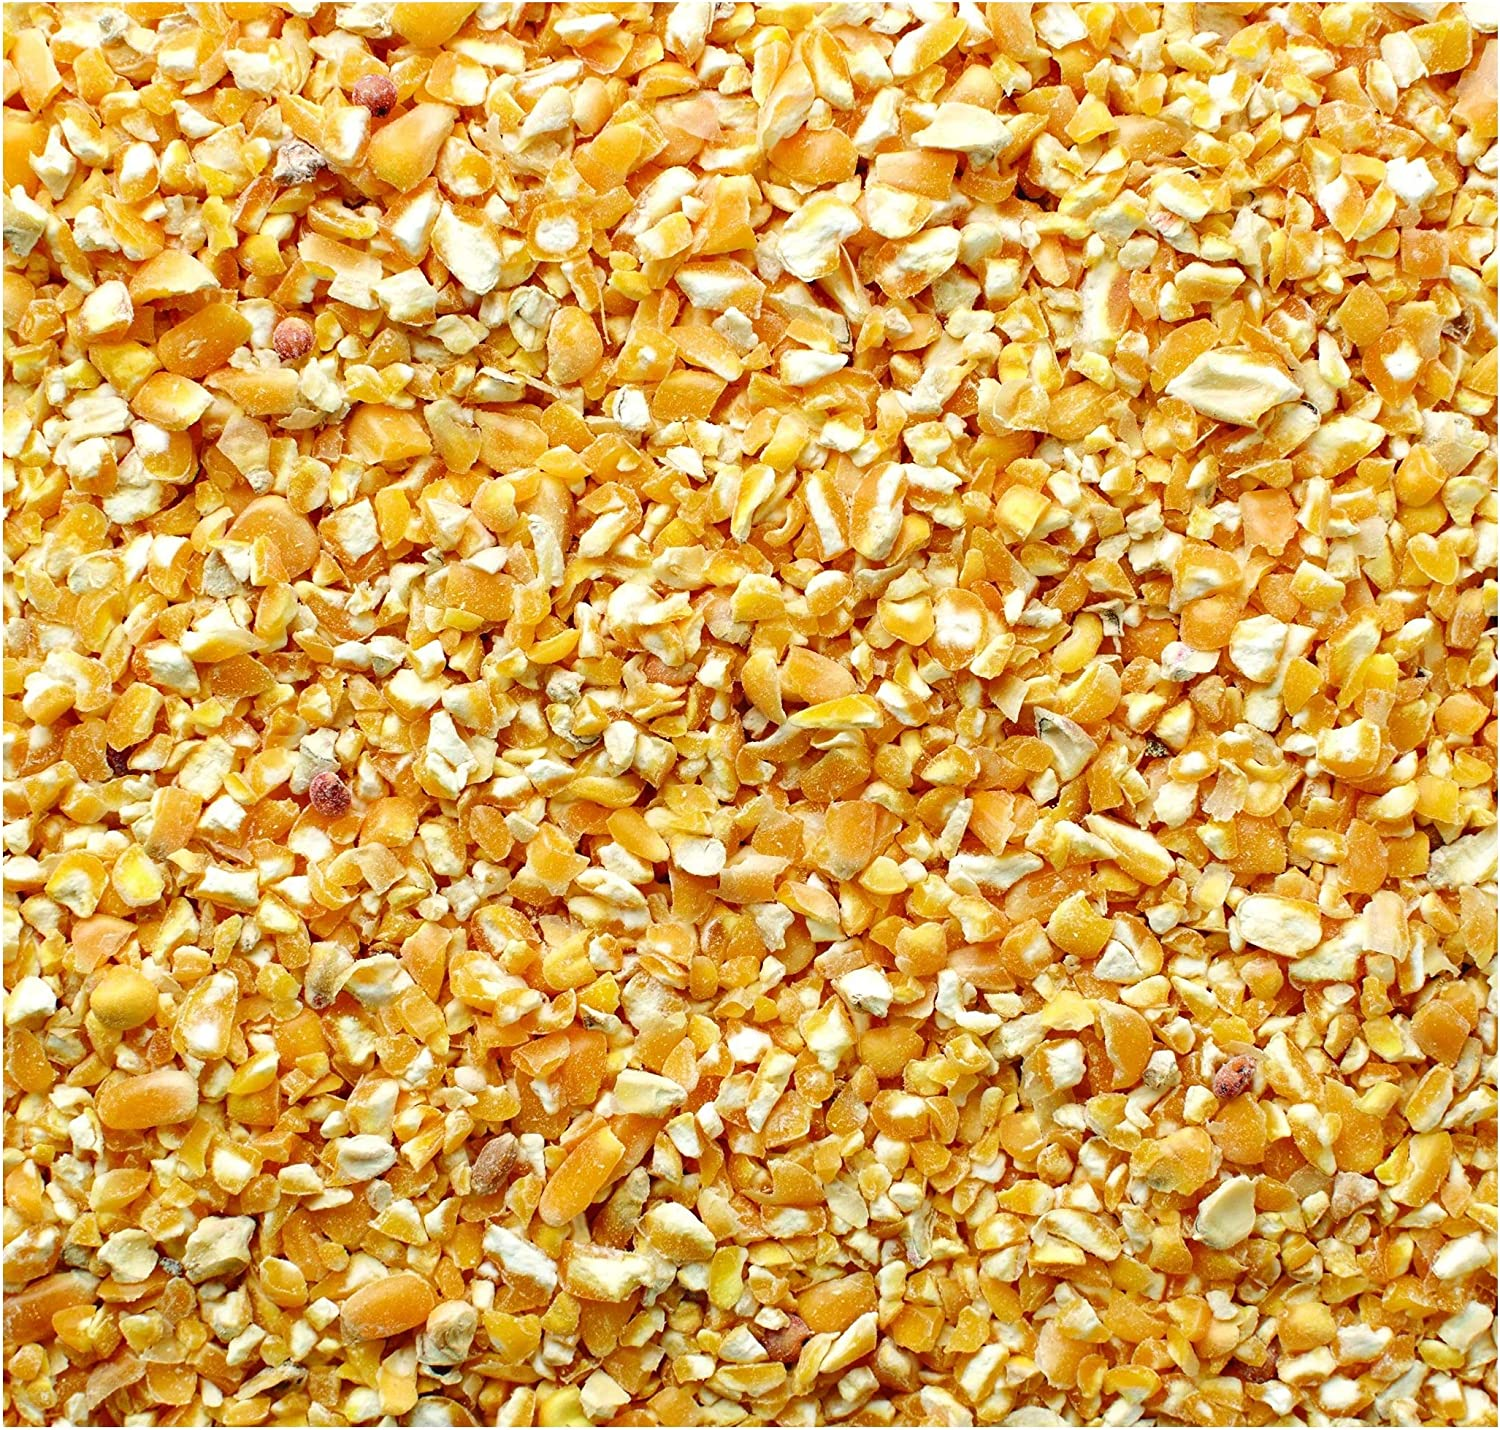 ESKS 10lbs Organic Cracked Corn for Whiskey Shine Bourbon Mash No Chemicals or Pesticides Yellow